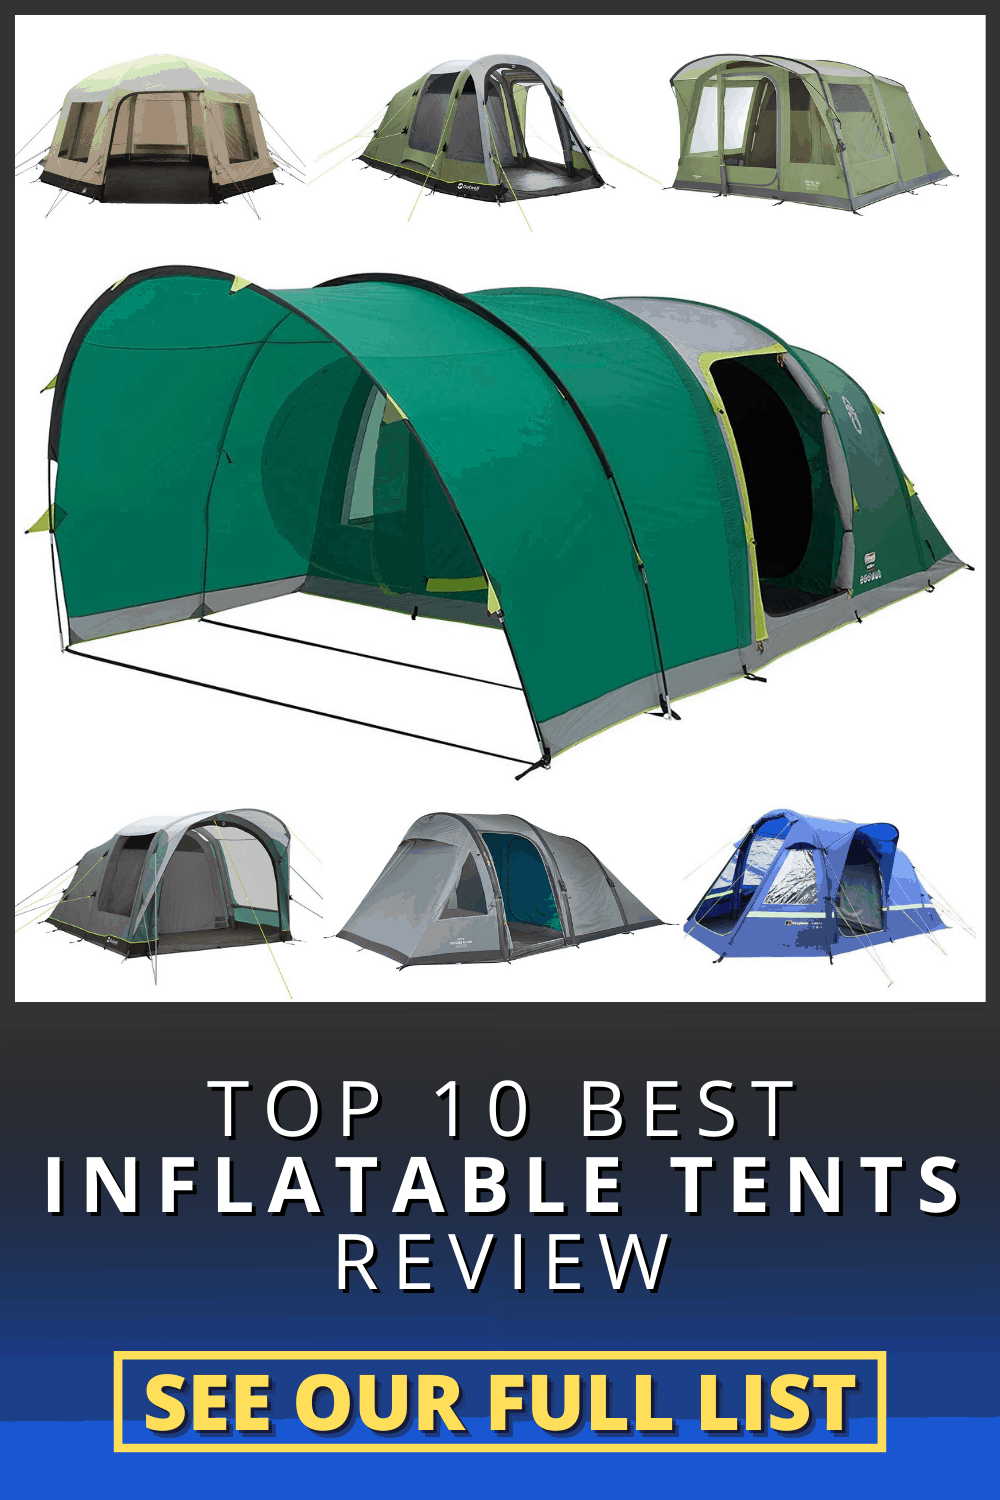 10 Best Inflatable Tents review